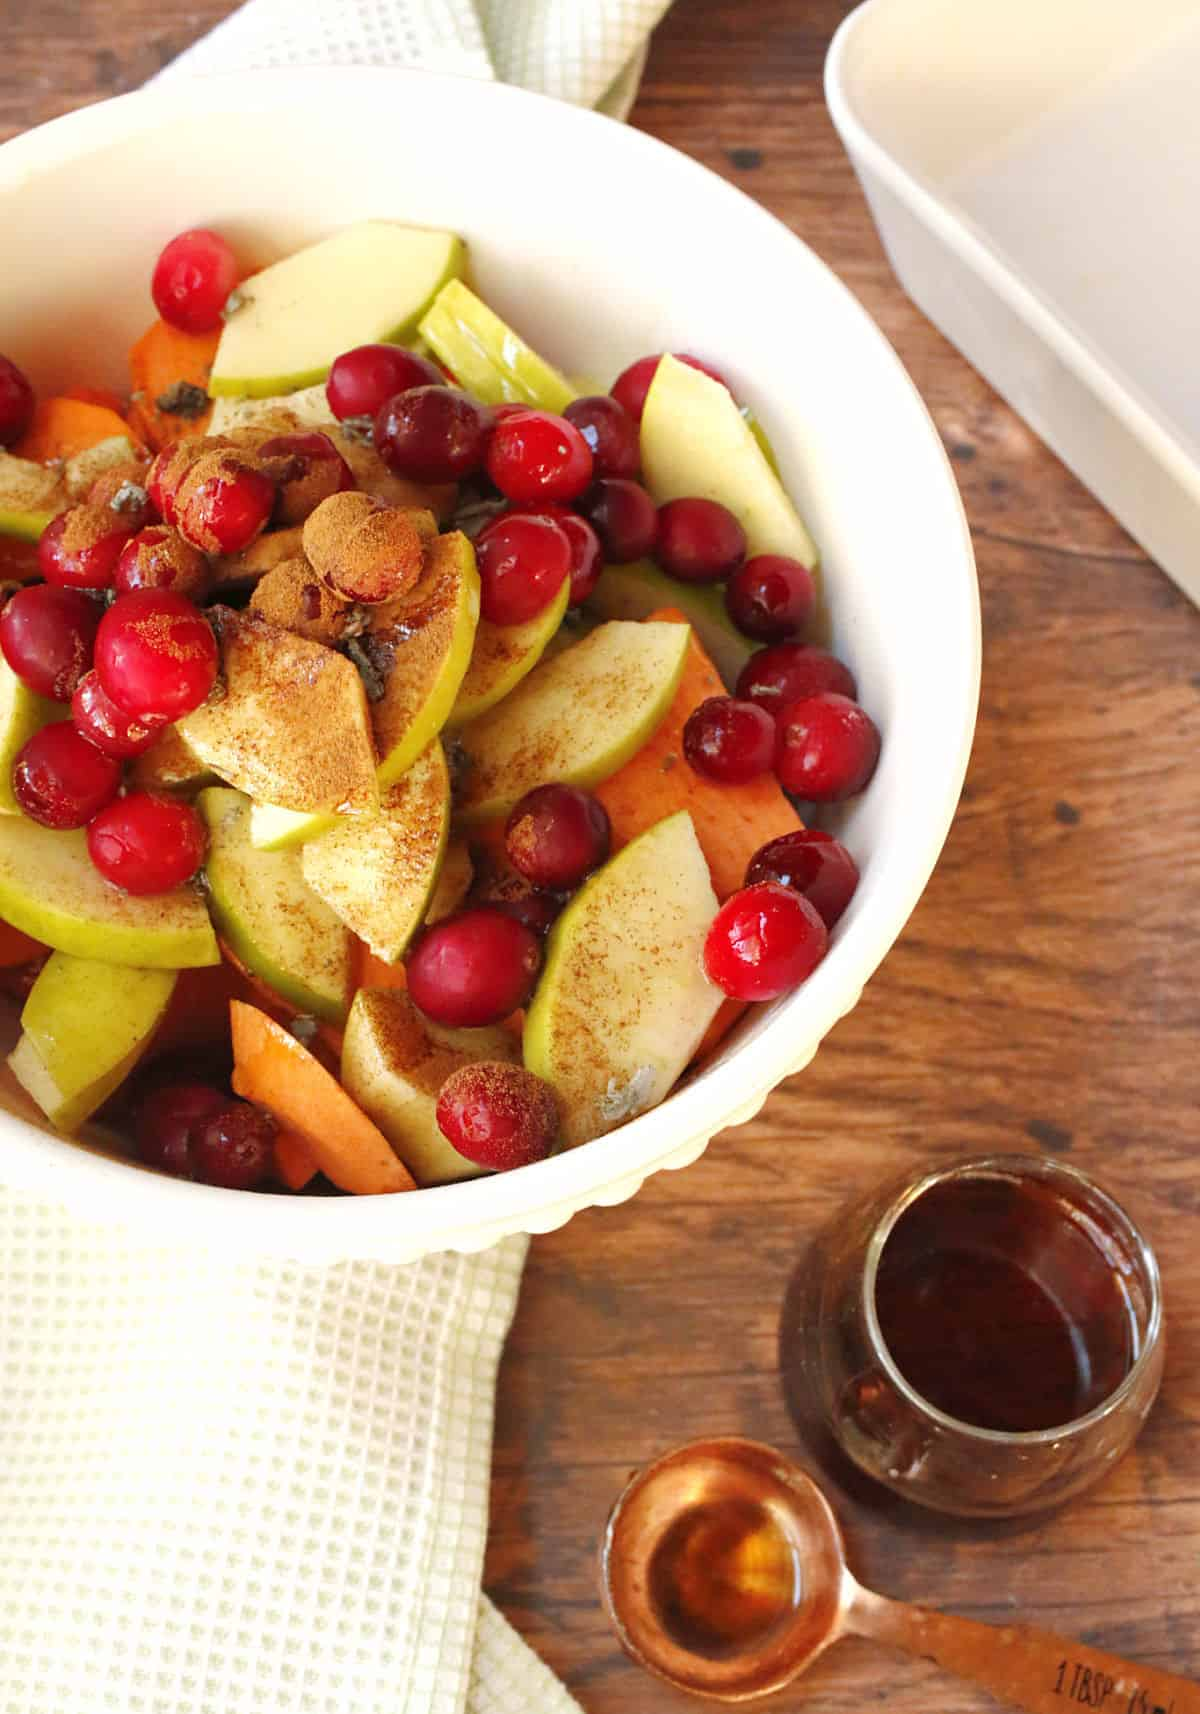 A mixing bowl filled with slices of sweet potatoes, apples and cranberries.